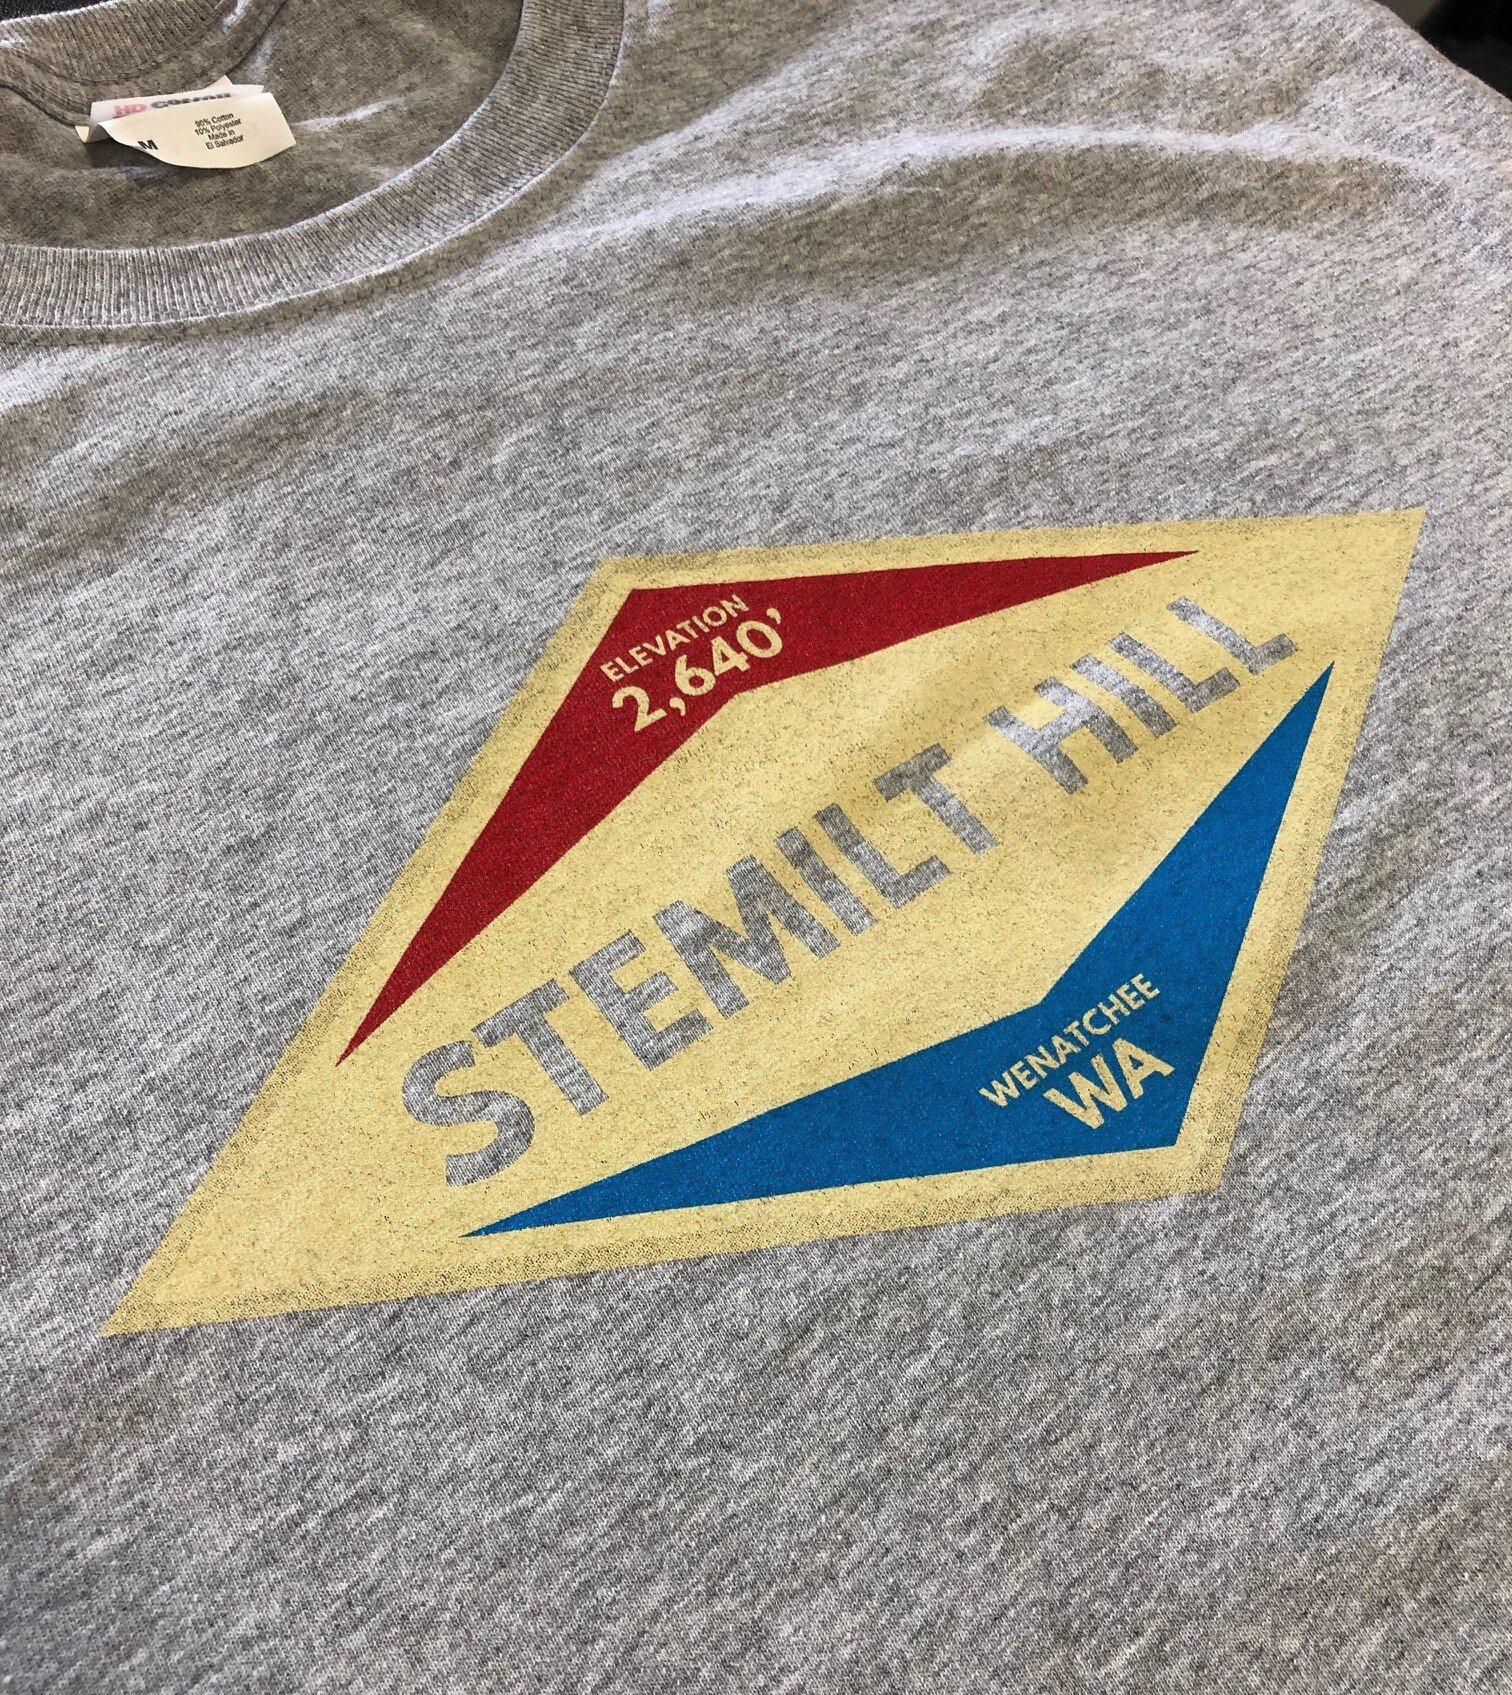 logounltd_laser_etching_embroidery_screen_printing_apparel_uniform_custom_tshirts_t_shirt_kirkland_bellevue_seattle_redmond_woodinville_branded_merchandise_promotional_products_logo_unltd_stemilt_produce.jpg